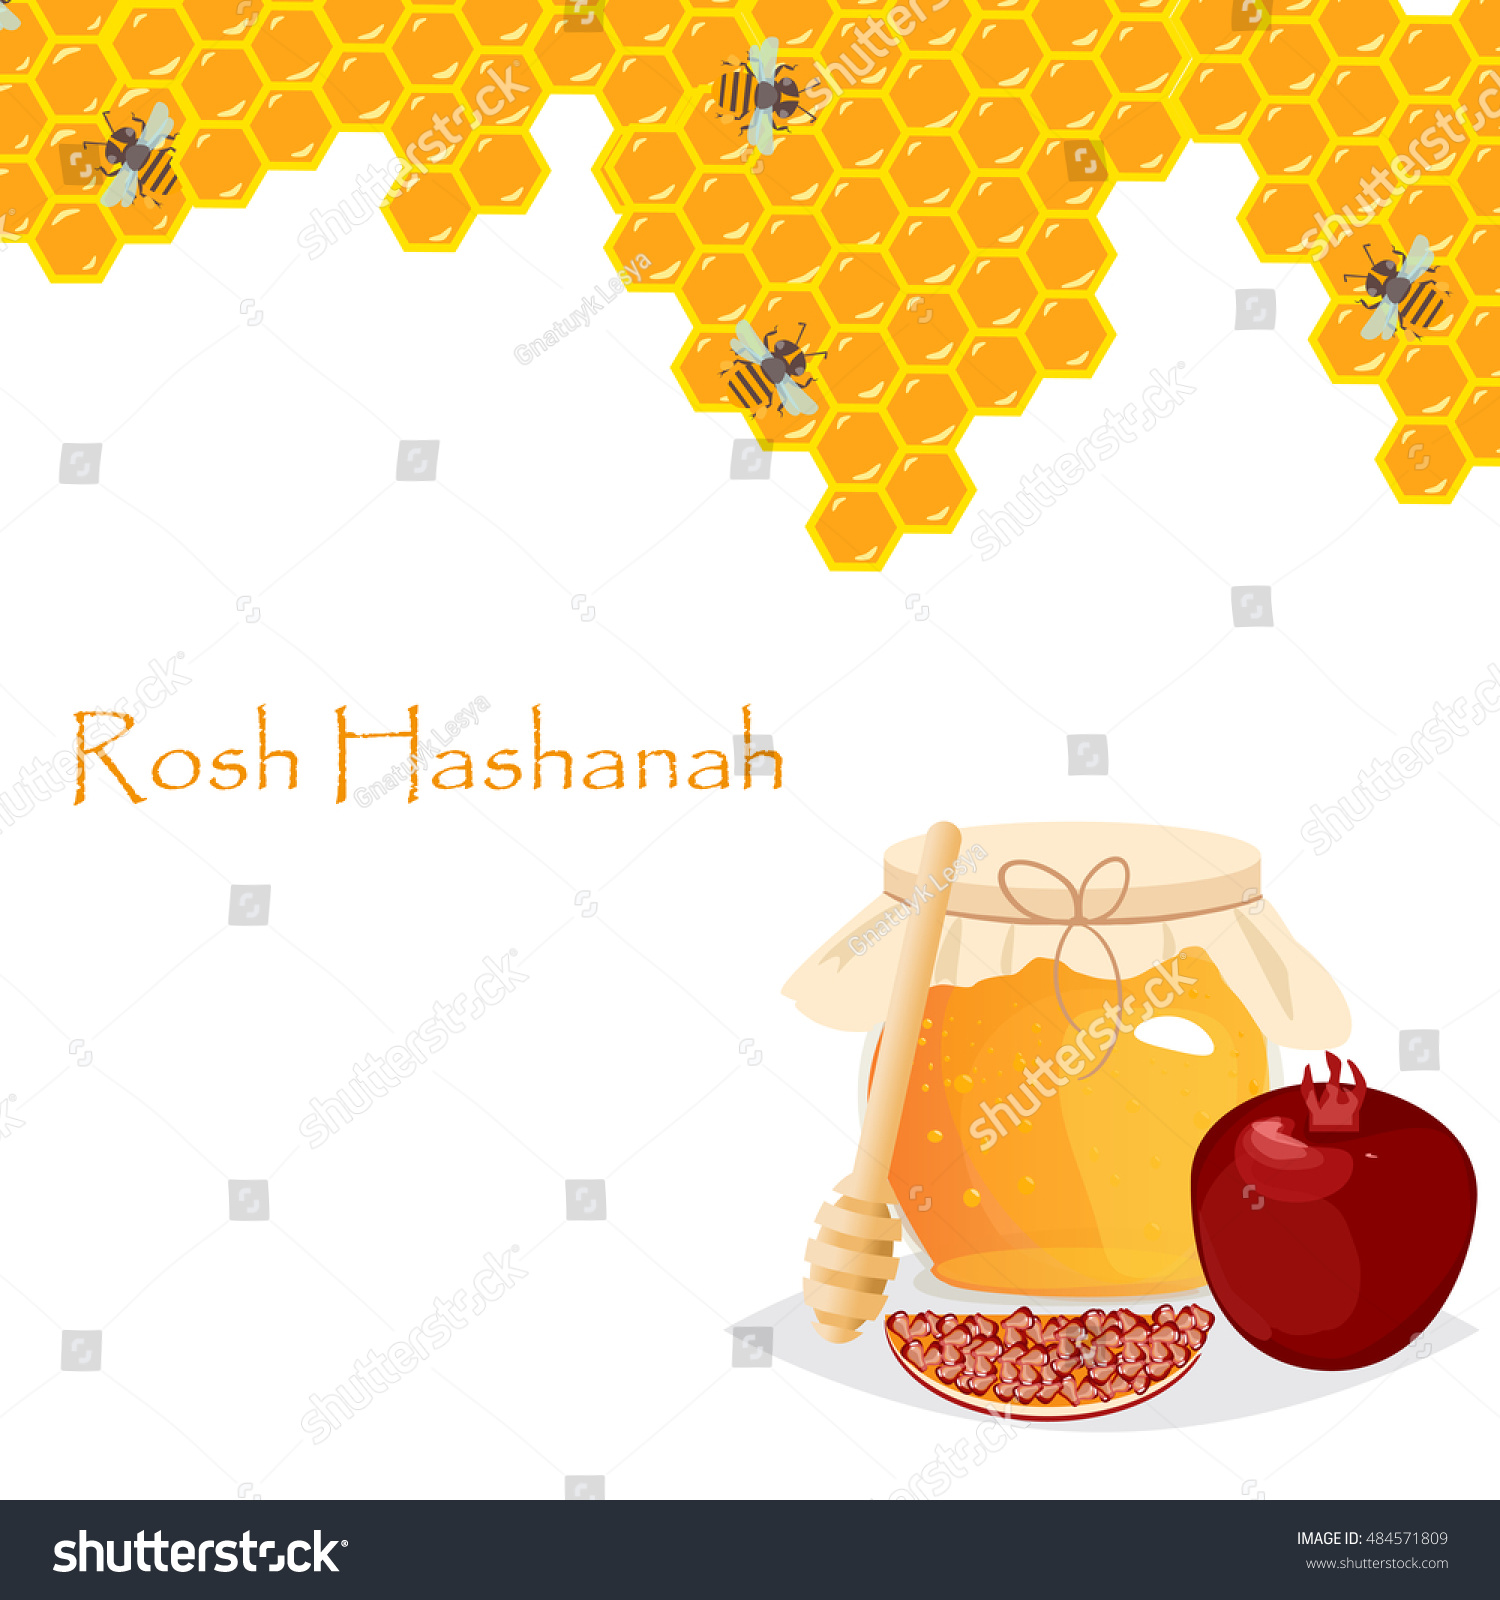 Rosh hashanah jewish new year greeting stock vector 484571809 rosh hashanah jewish new year greeting card set design with hand drawing apple honey and pomegranate kristyandbryce Choice Image